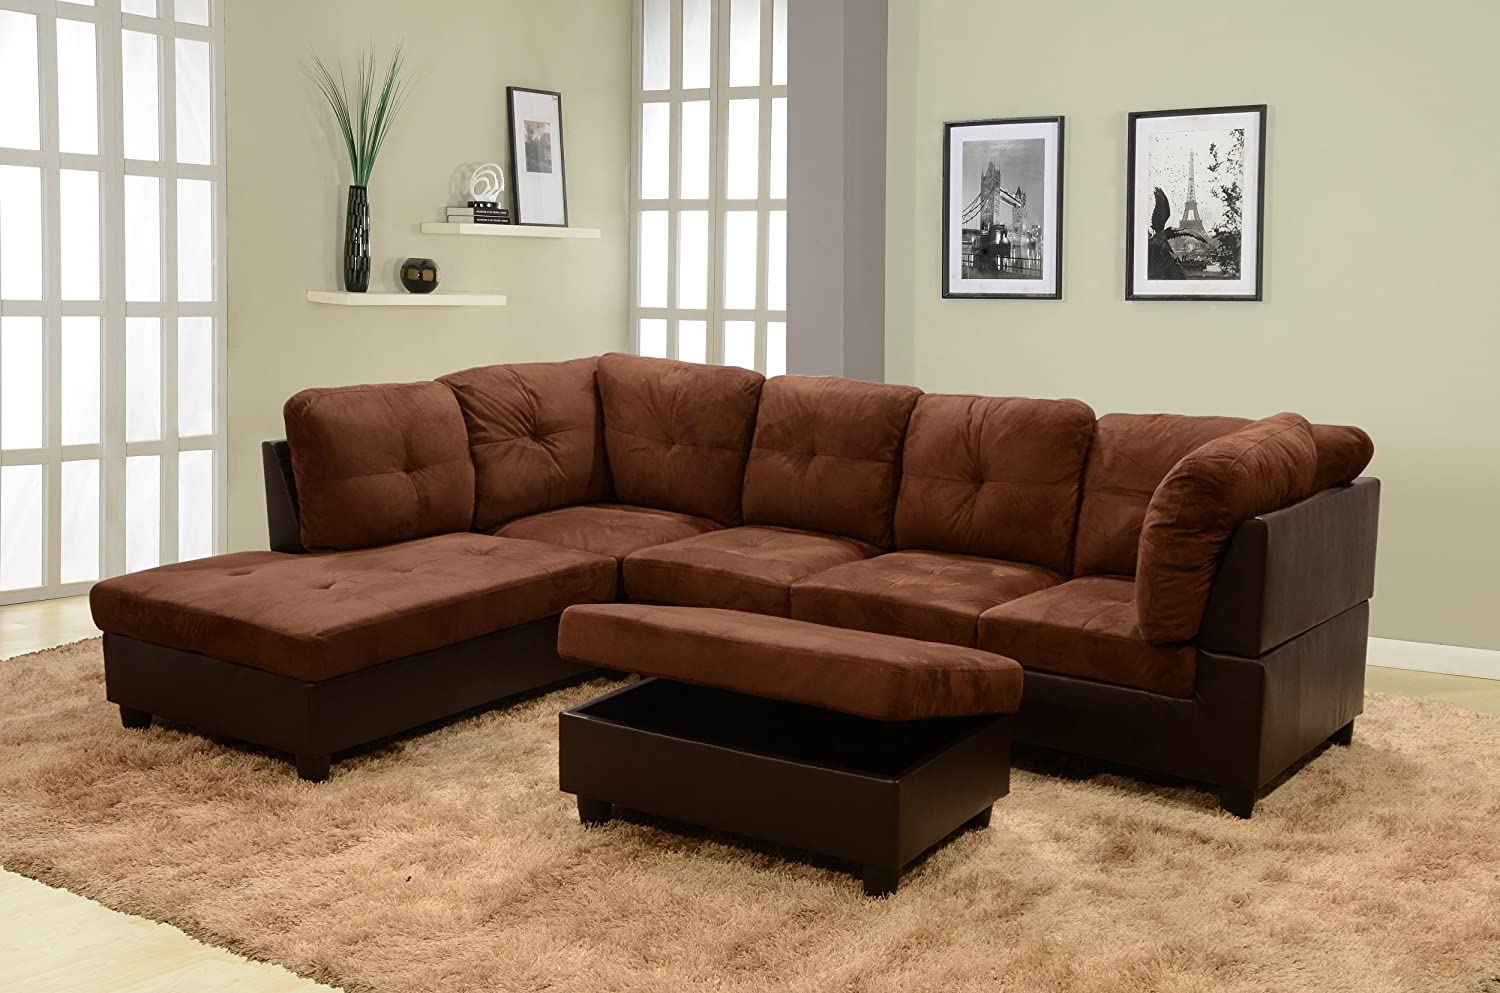 Chocolate Sectional Couch 3-Pc Set Microfiber Sofa Sectionals